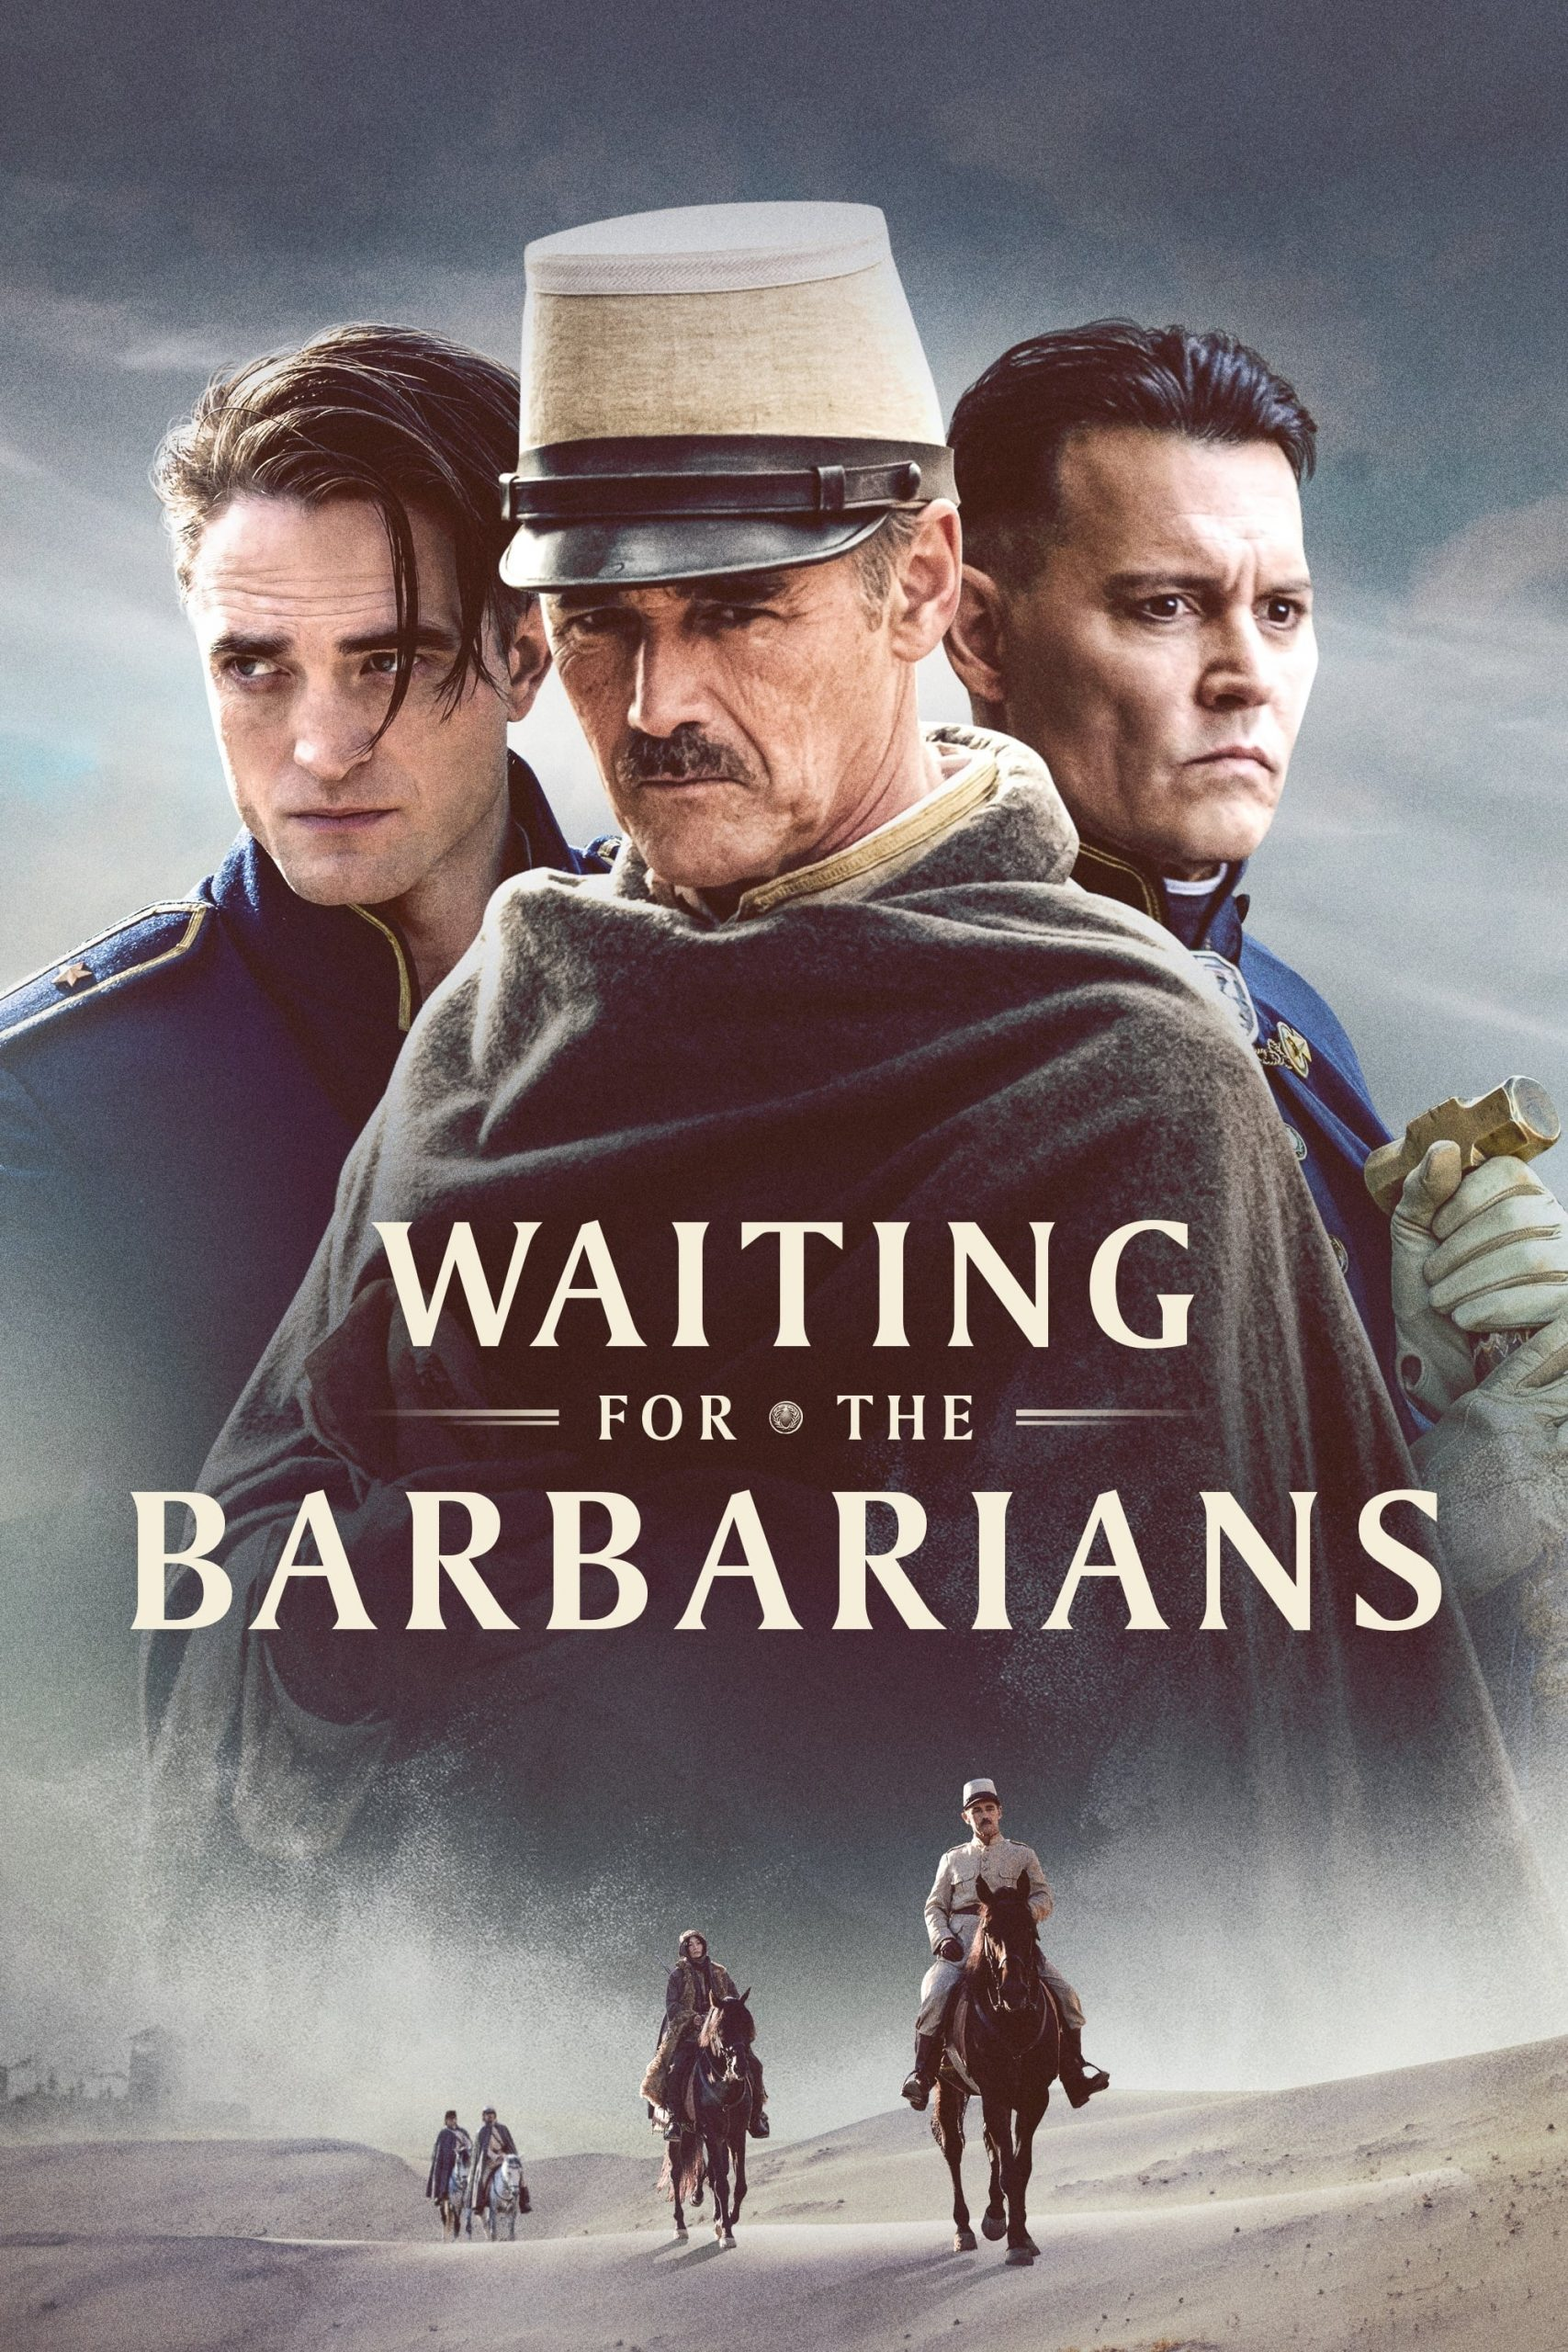 thumb Waiting for the Barbarians